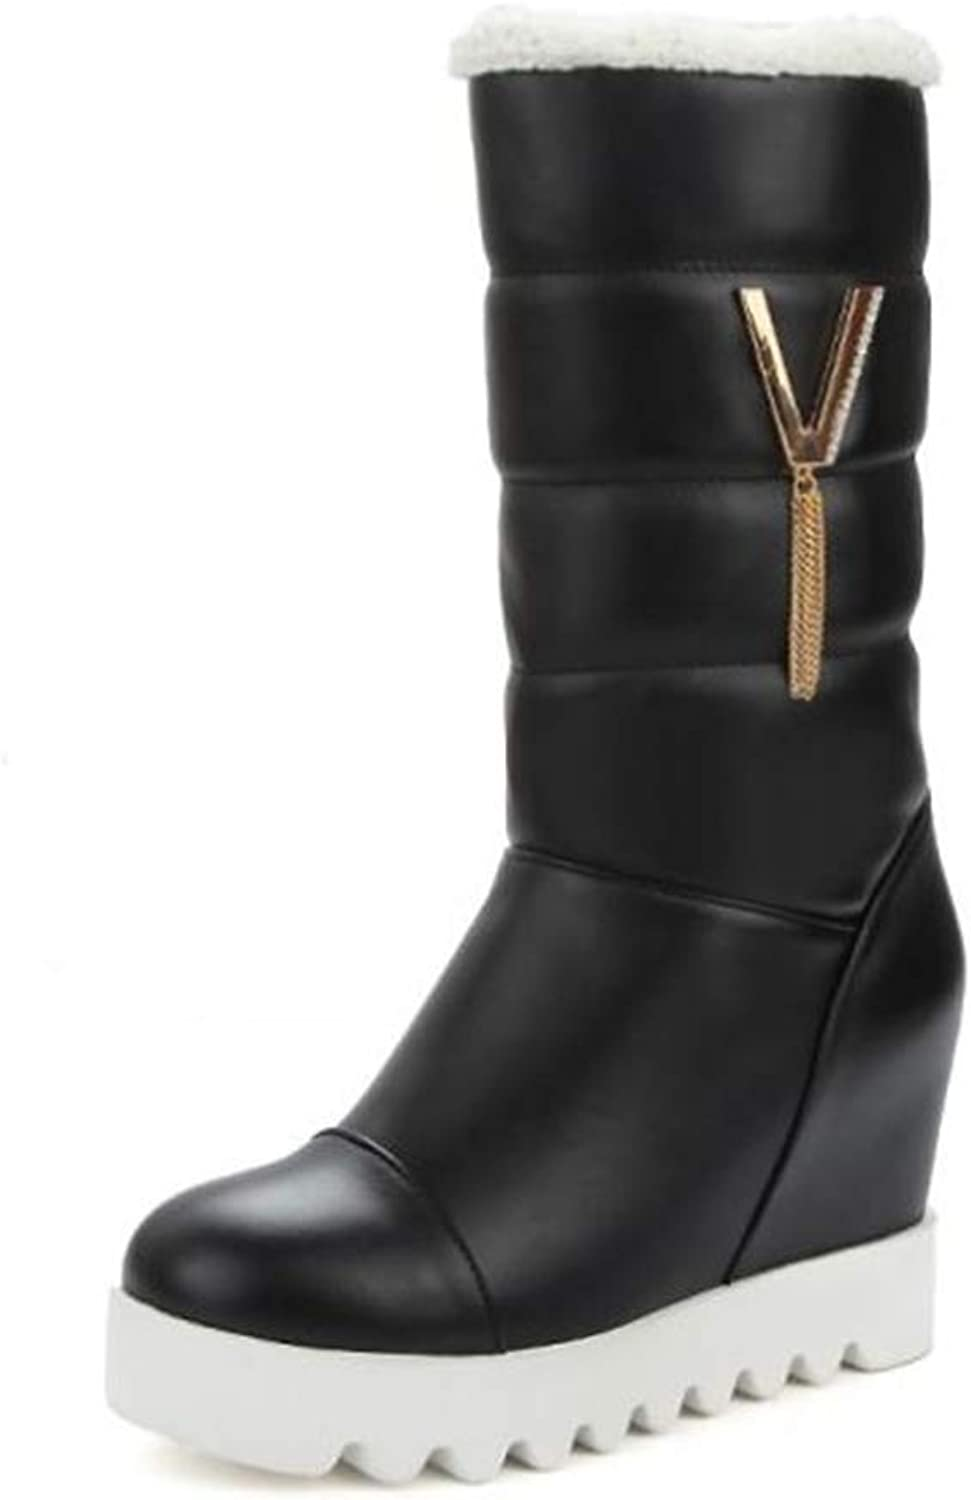 Smart.A Women's PU Winter Boots, Increased Bow Boots Plus Velvet Platform Boots